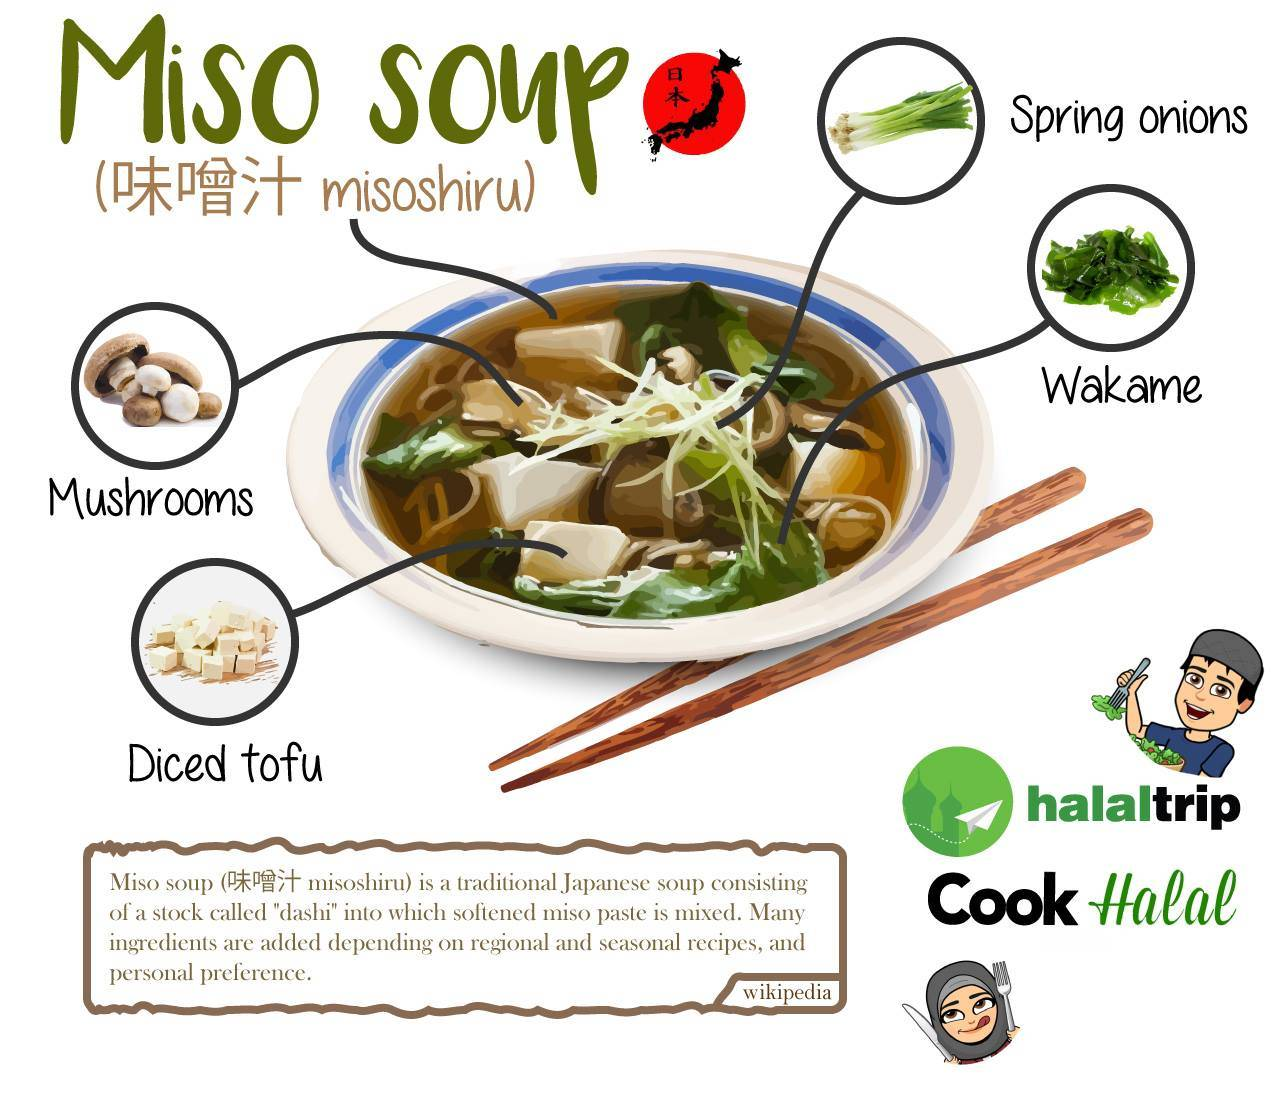 Cook halal japanese miso soup with inari ku simple recipes miso soup halal japanese cuisine japanese food easy recipe forumfinder Images